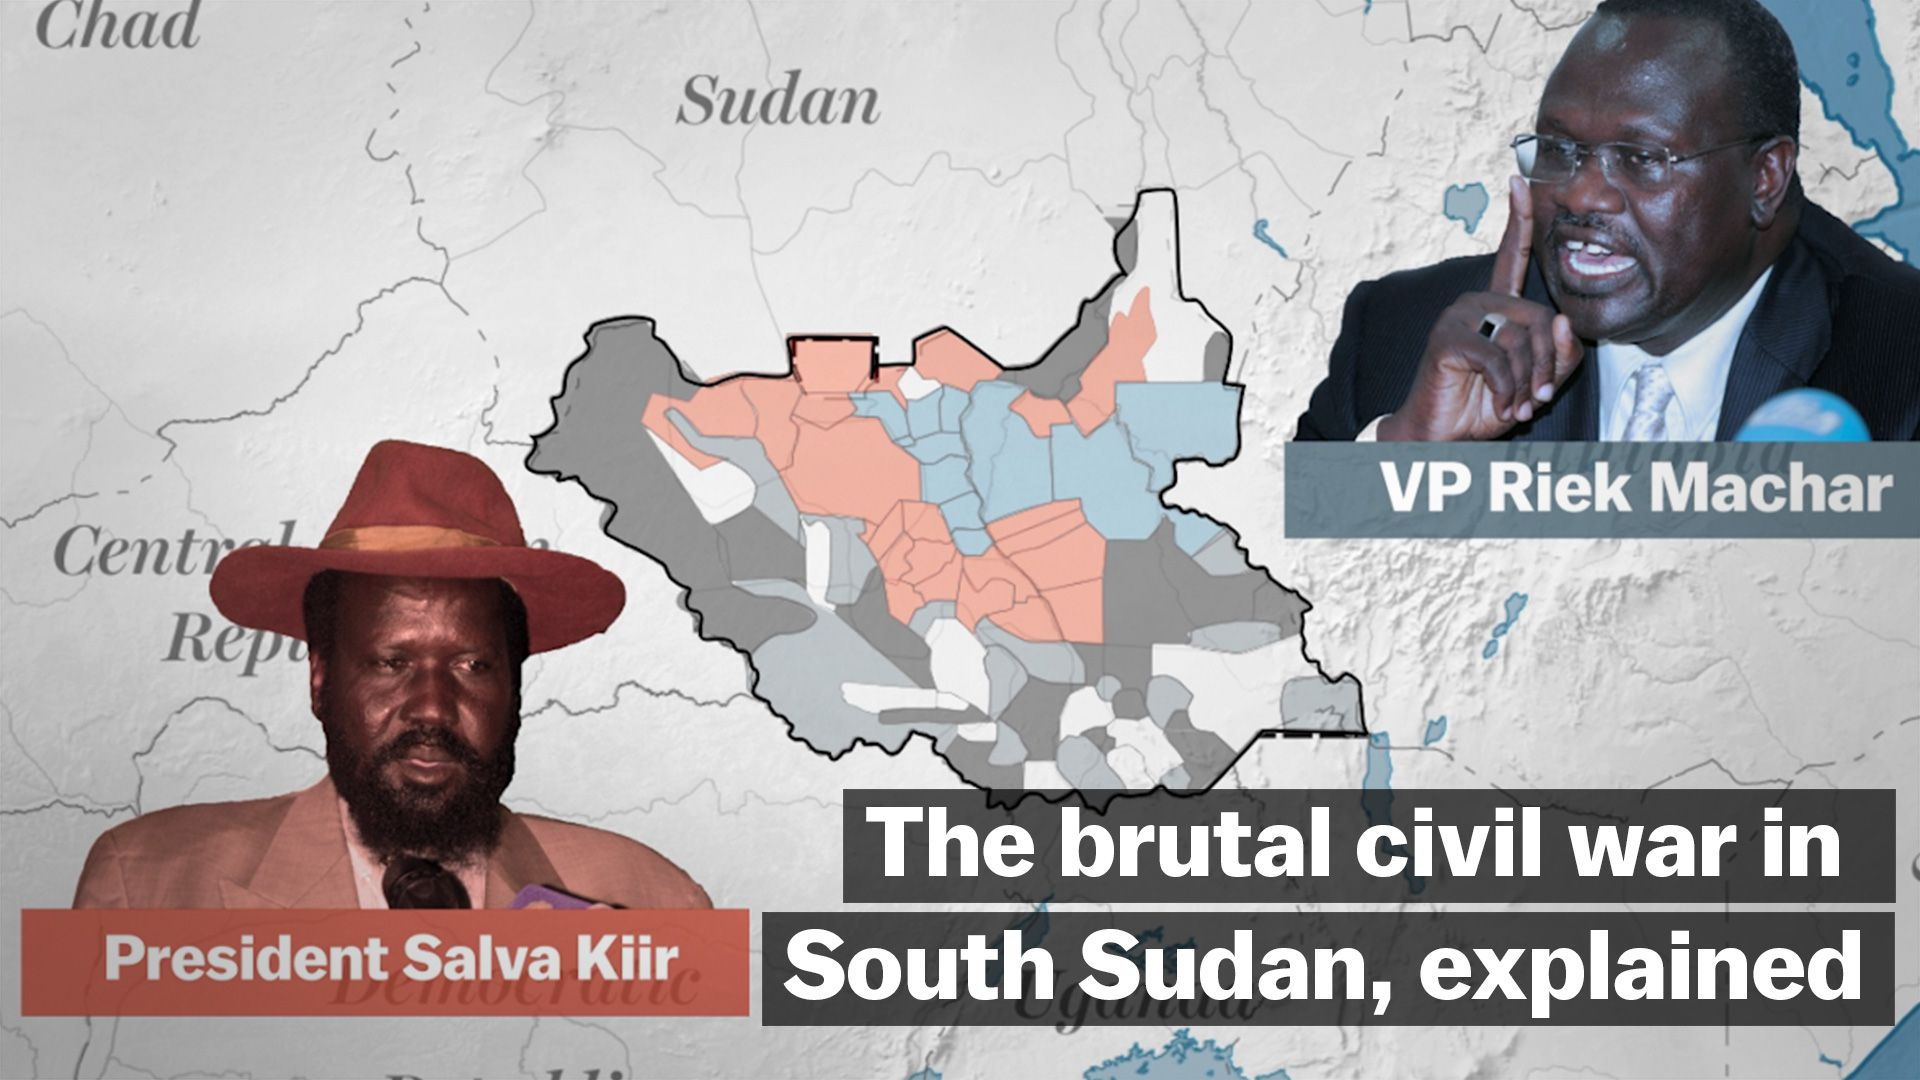 The conflict in South Sudan, explained - Vox